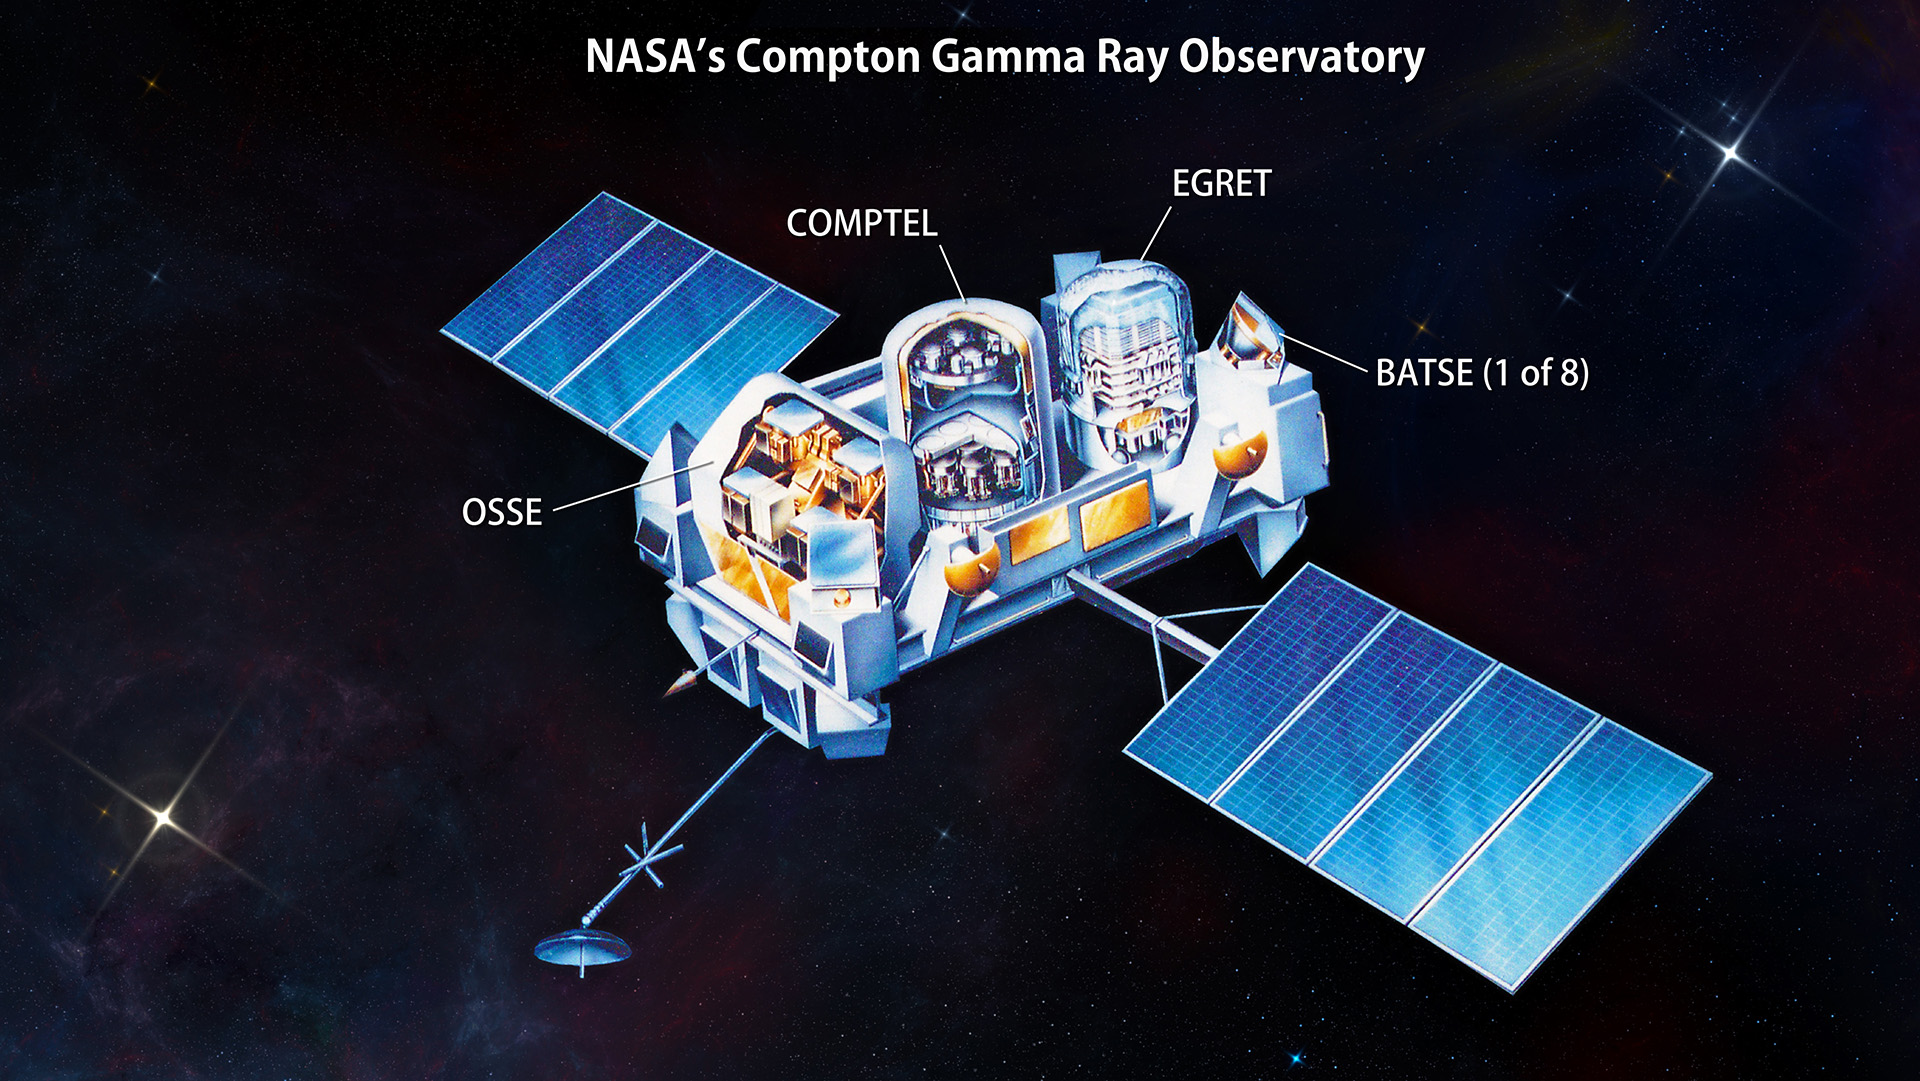 an analysis of gamma ray bursts in astronomical anomalies These first observations of gamma-ray bursts were not classified, but they required extensive data reduction and analysis with limited resources before the researchers, headed by ray klebesadel of los alamos, were confident that the bursts being observed were of cosmic origin.